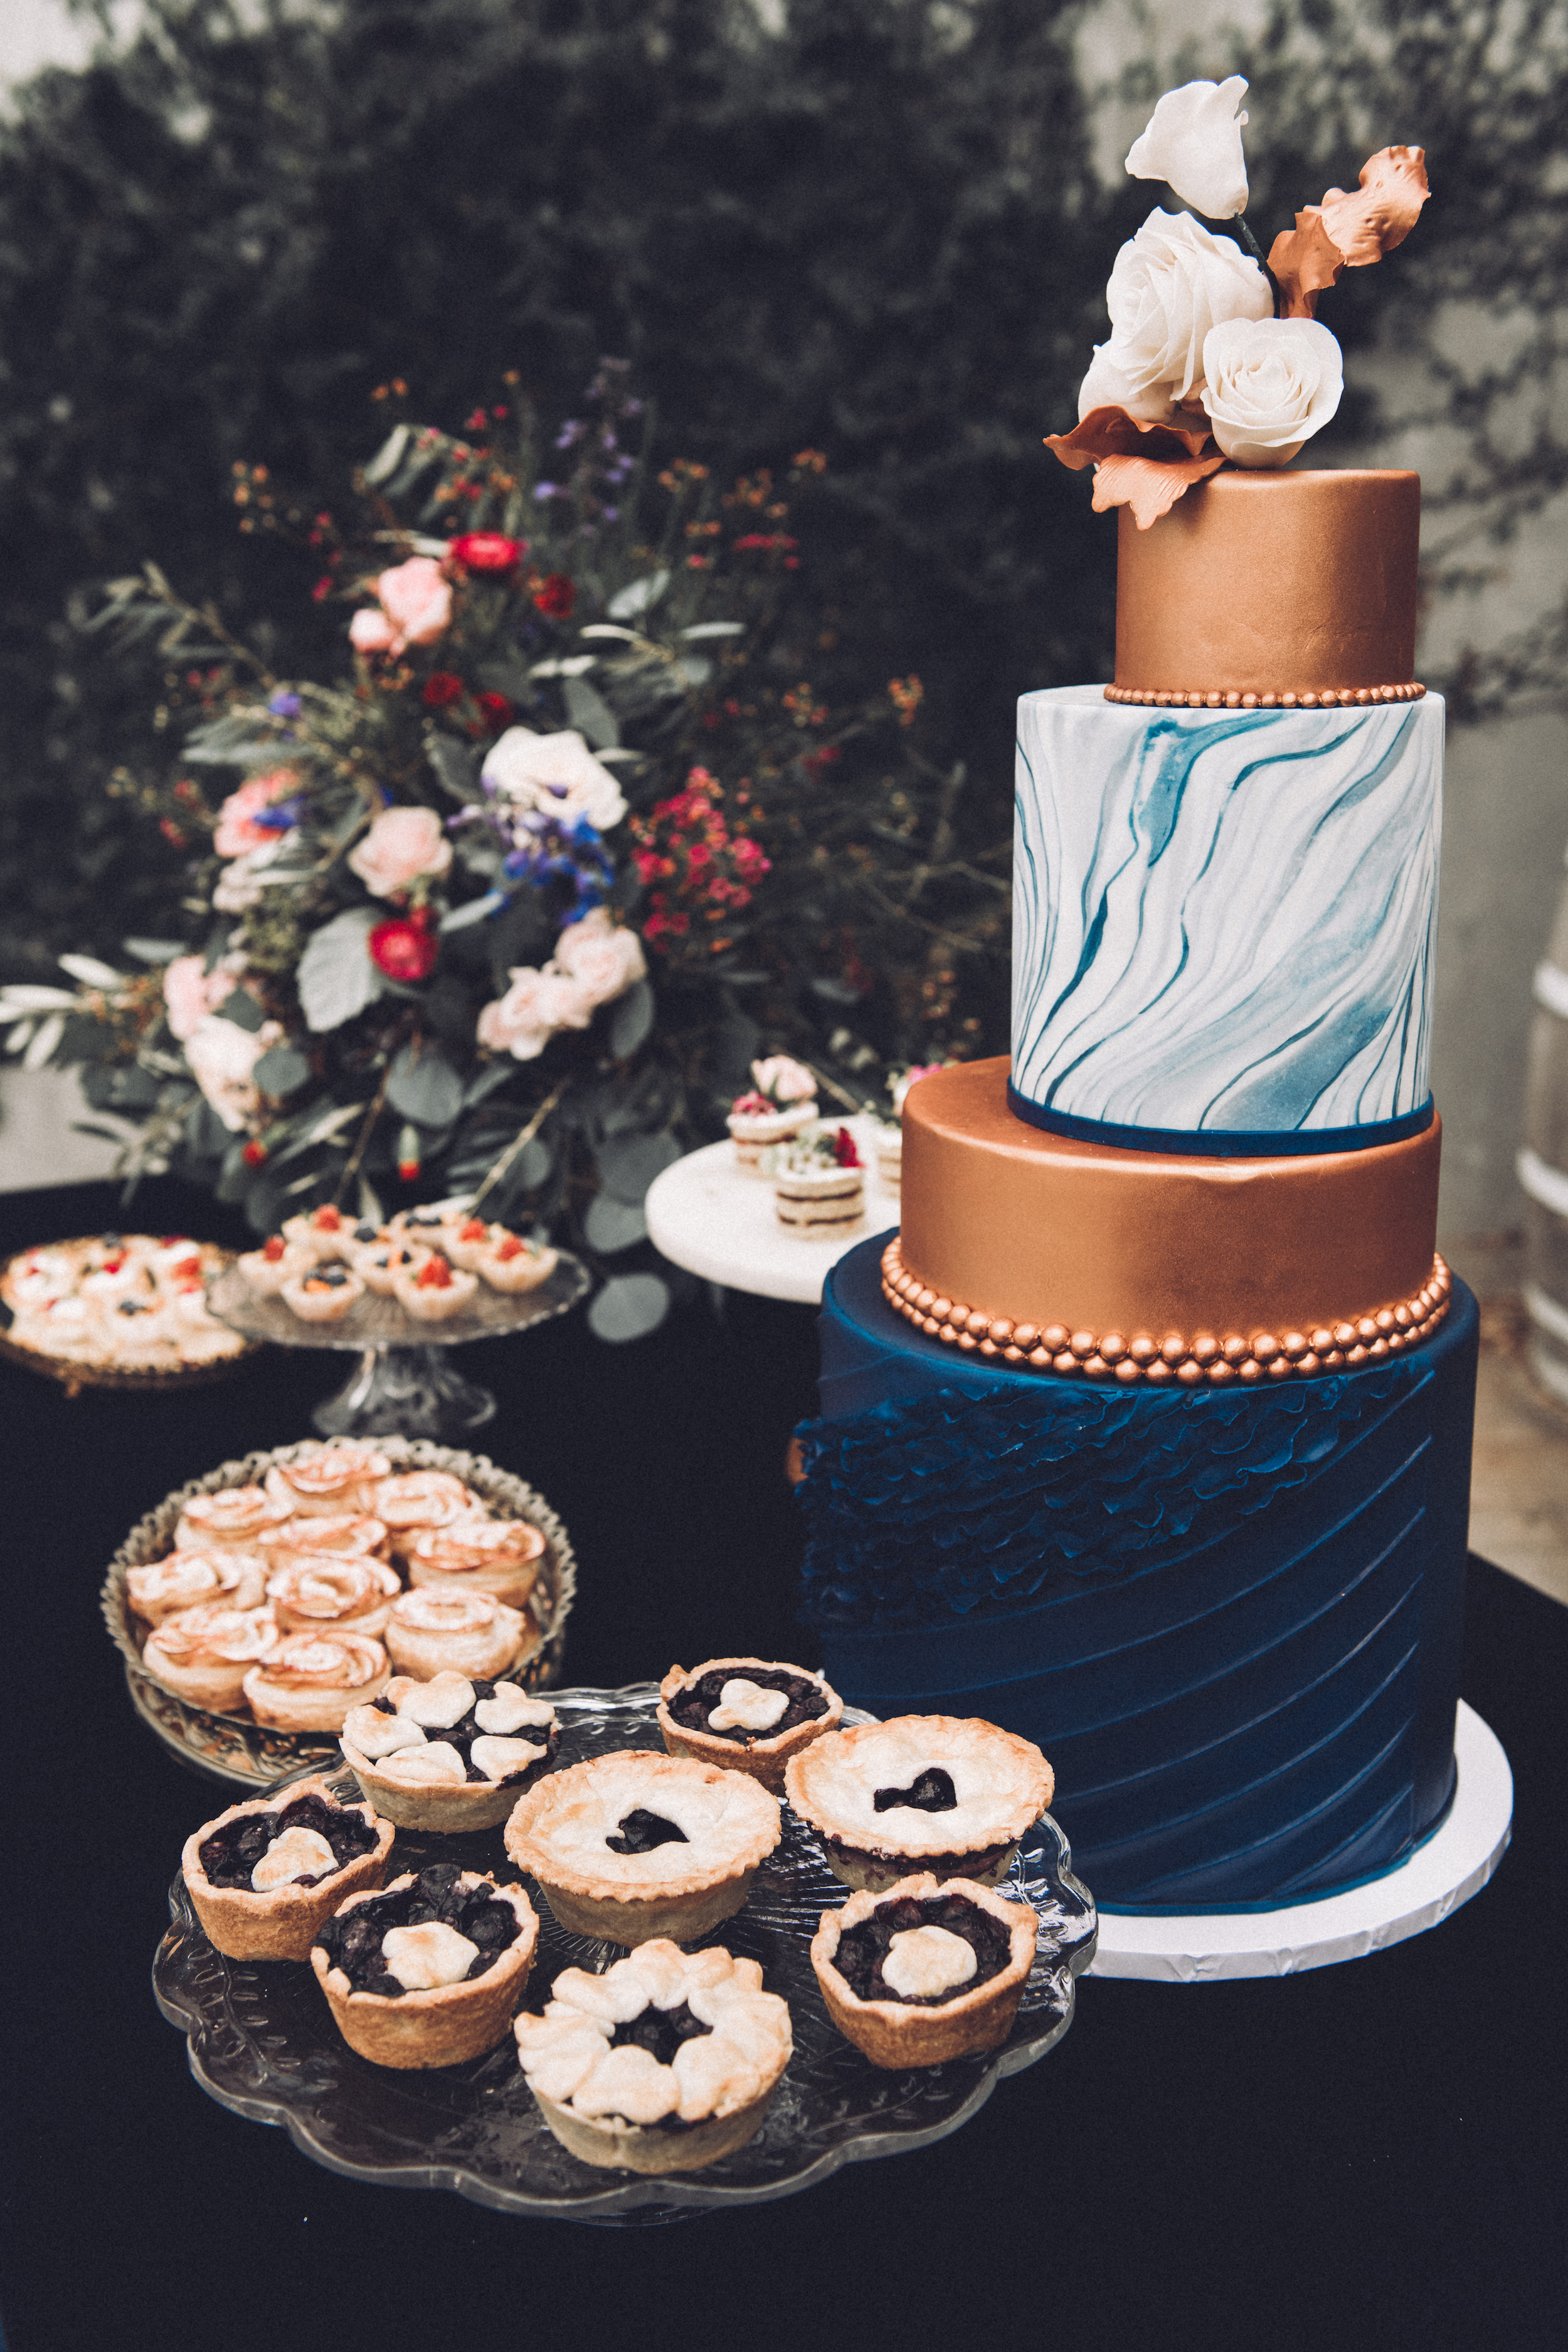 - An Instagram worthy dessert table with many options to choose from.